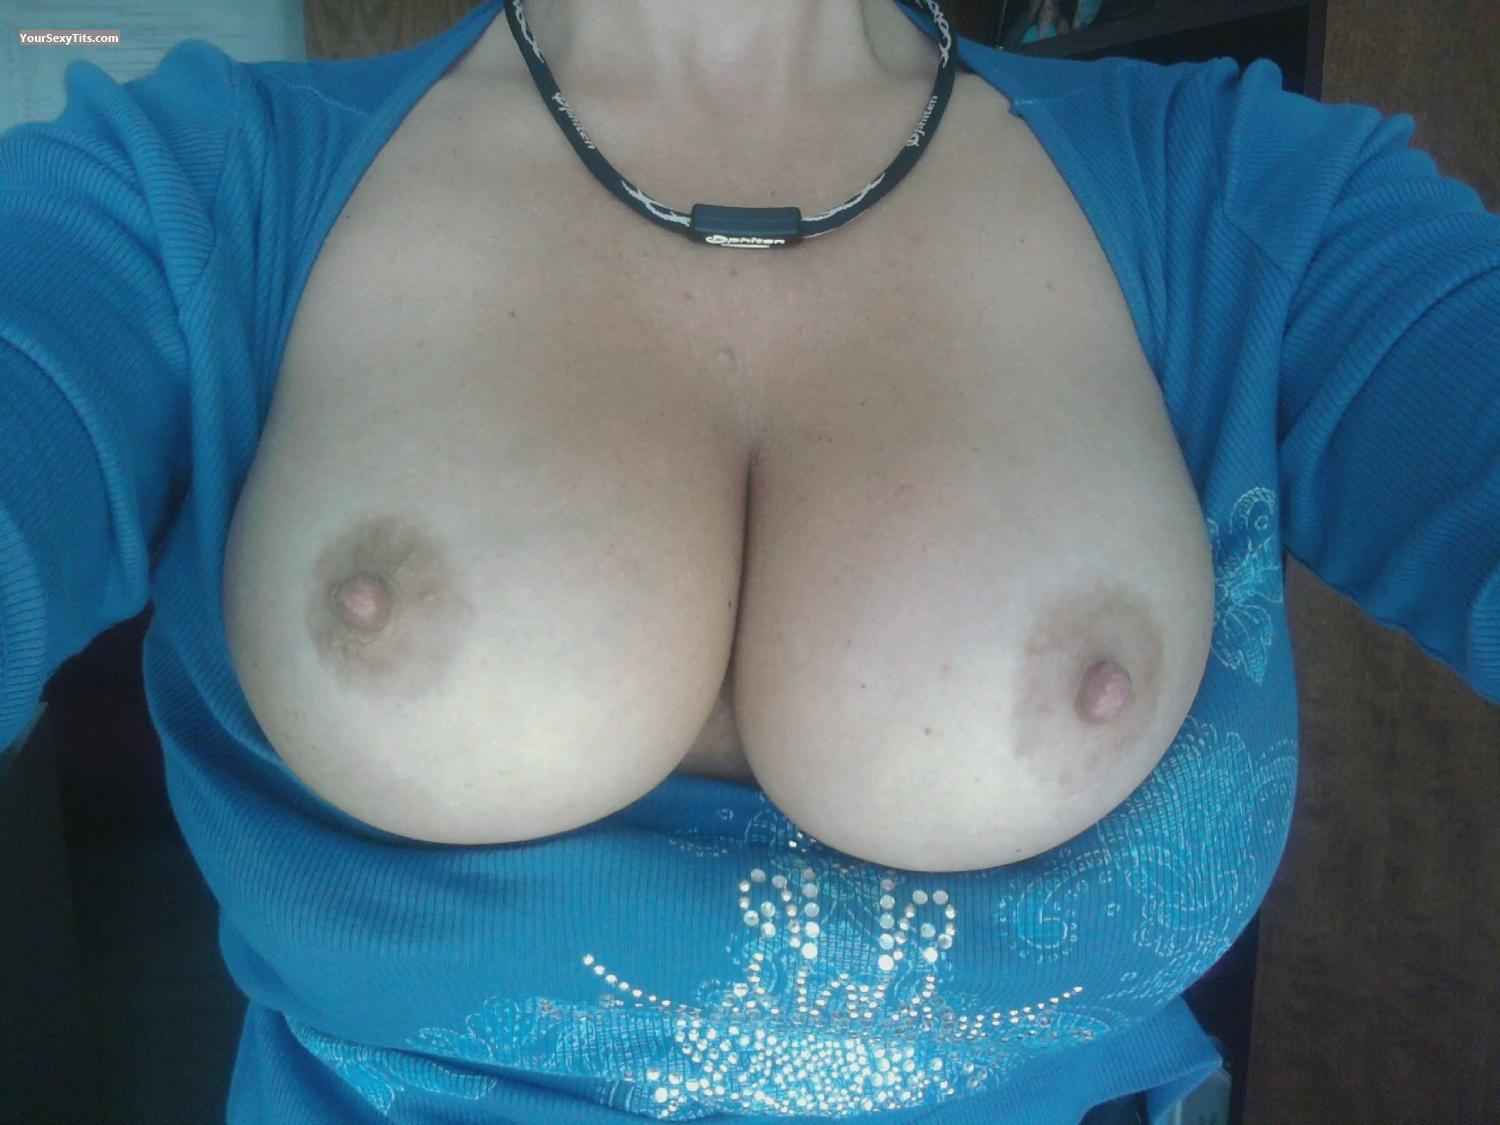 Tit Flash: My Very Big Tits By IPhone (Selfie) - Big Tease from United States